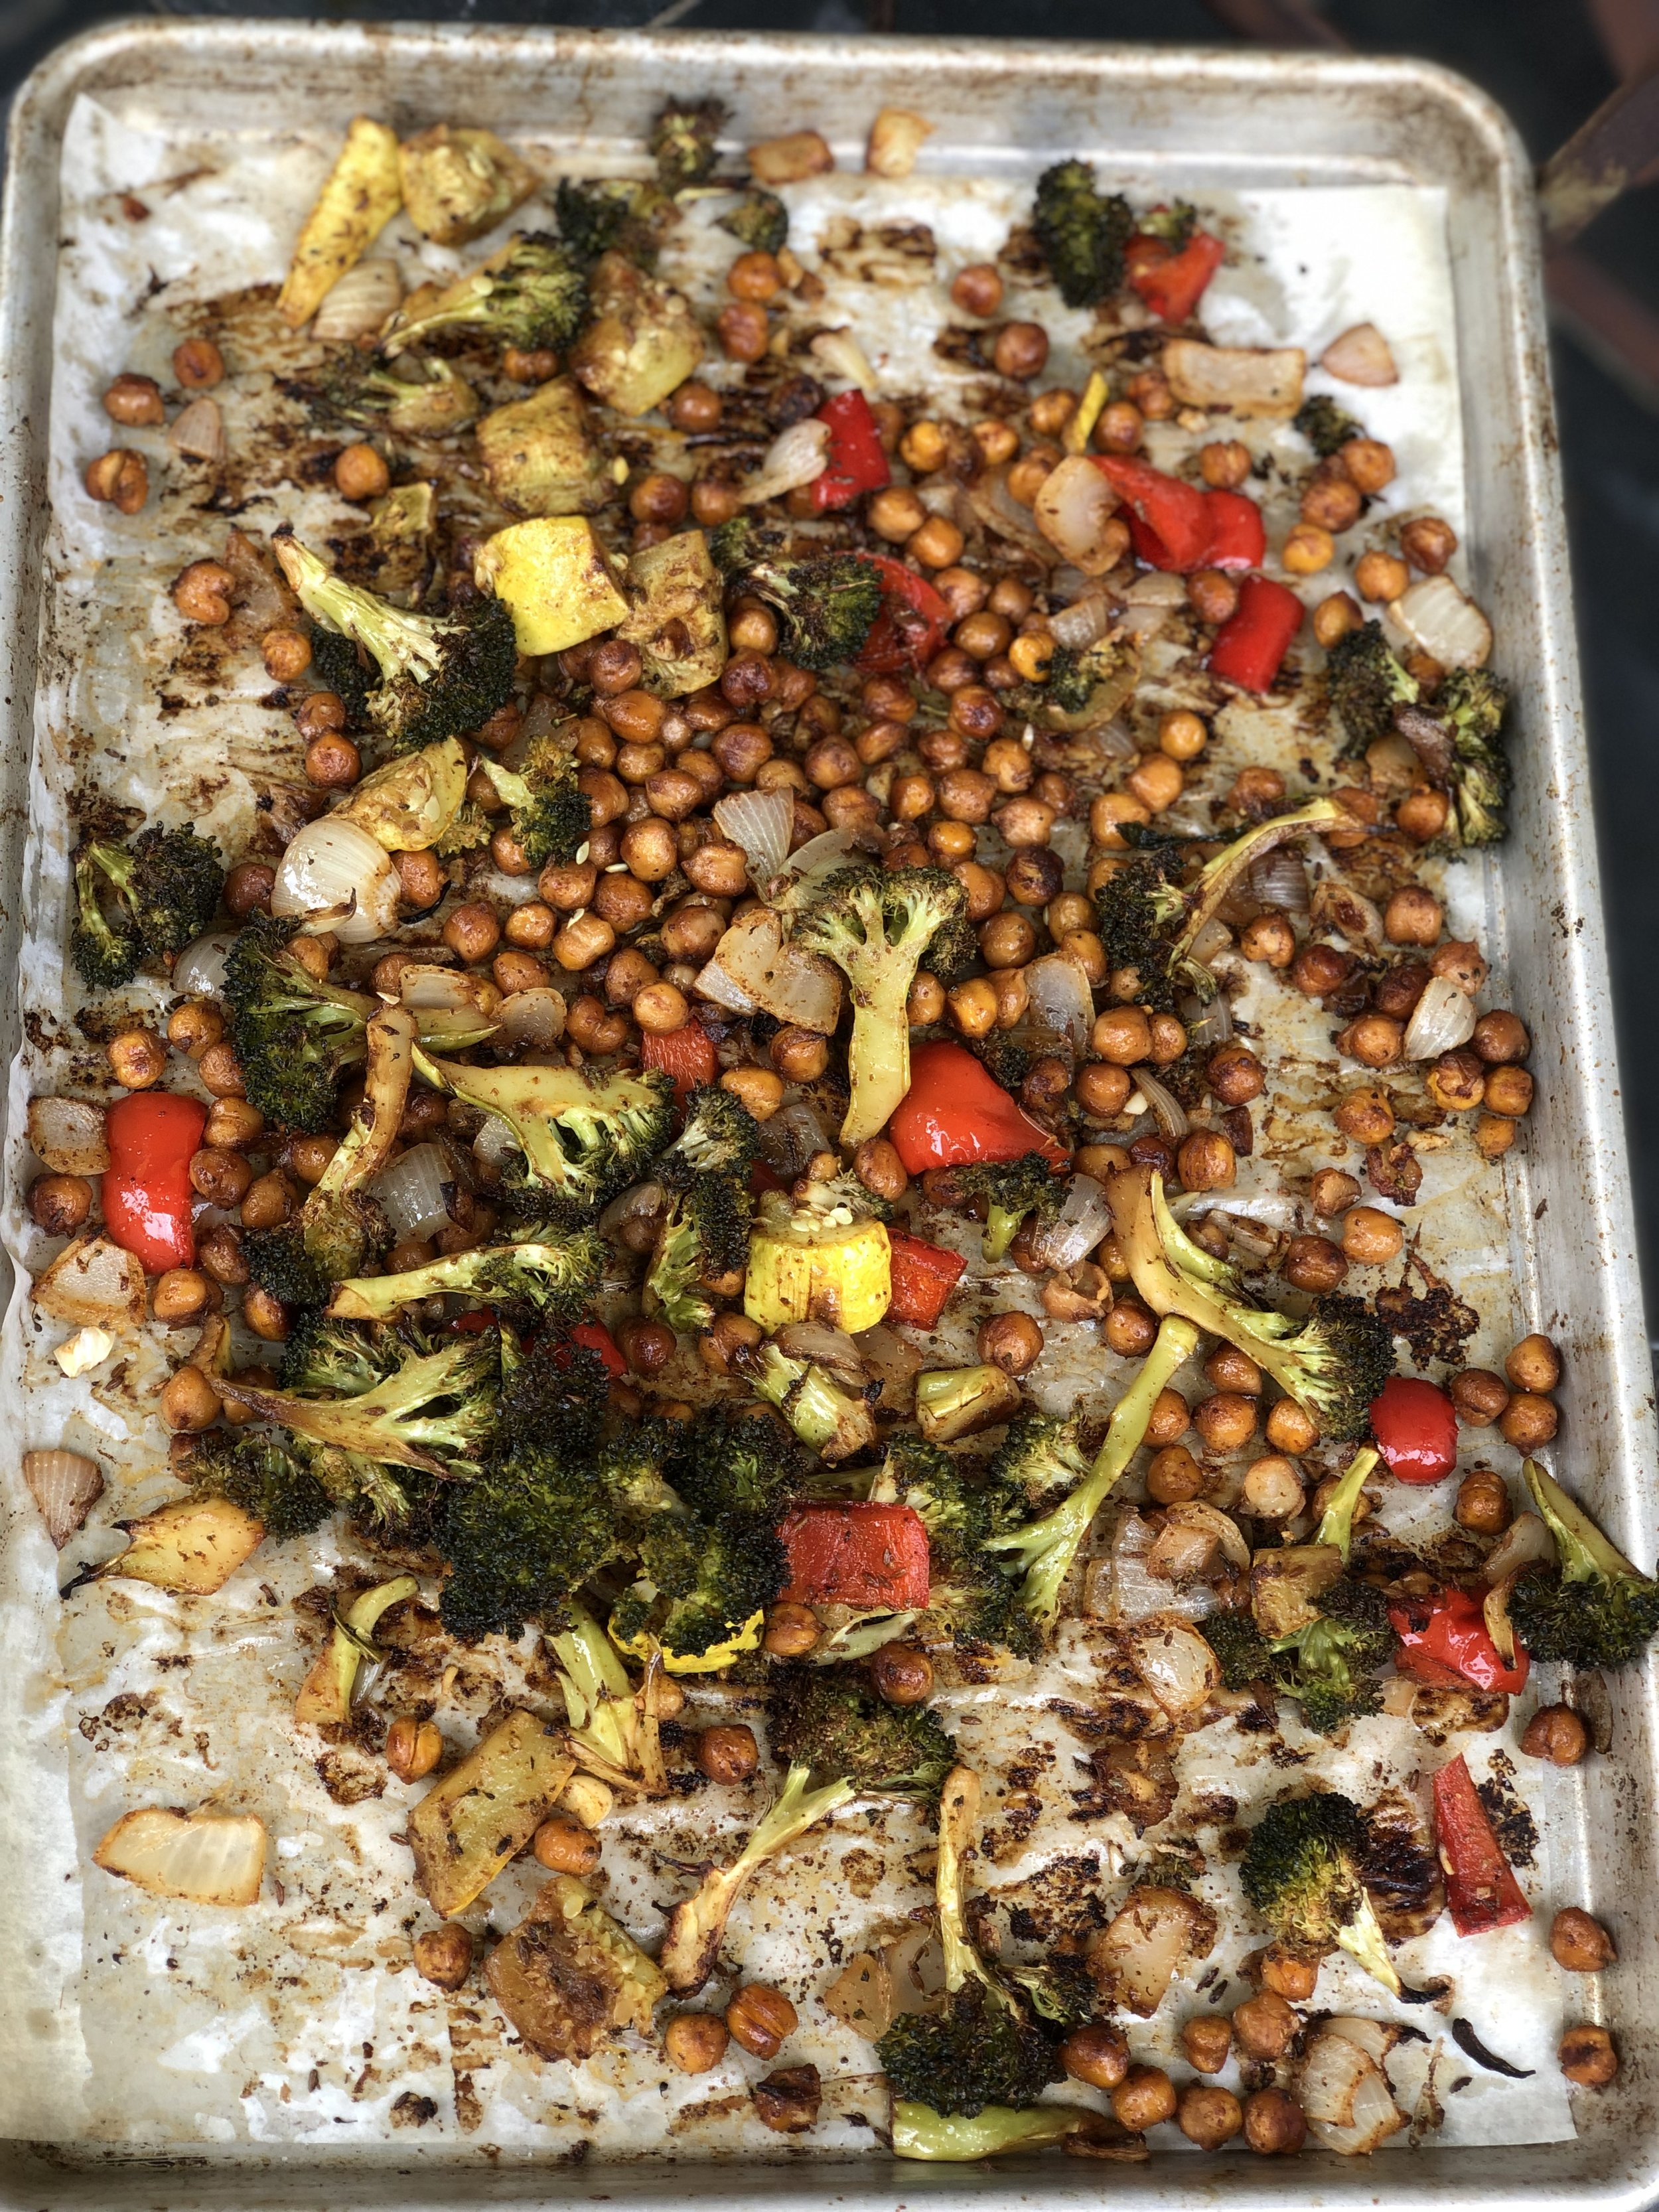 Roasted chickpea & broccoli filling for burrito